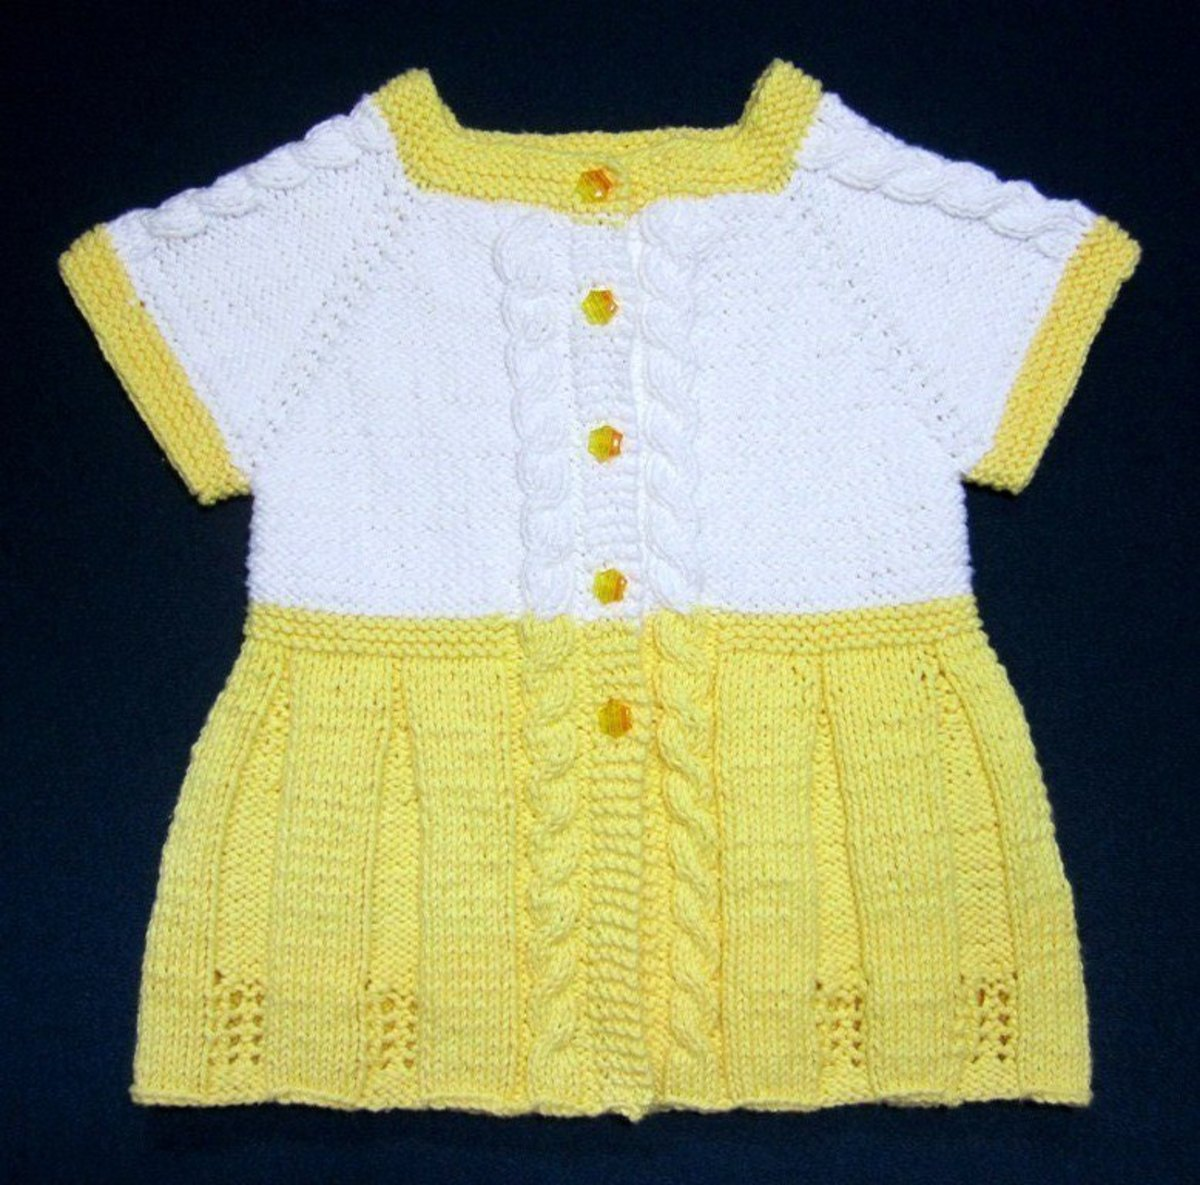 Seamless White and Yellow Baby Sweater Dress